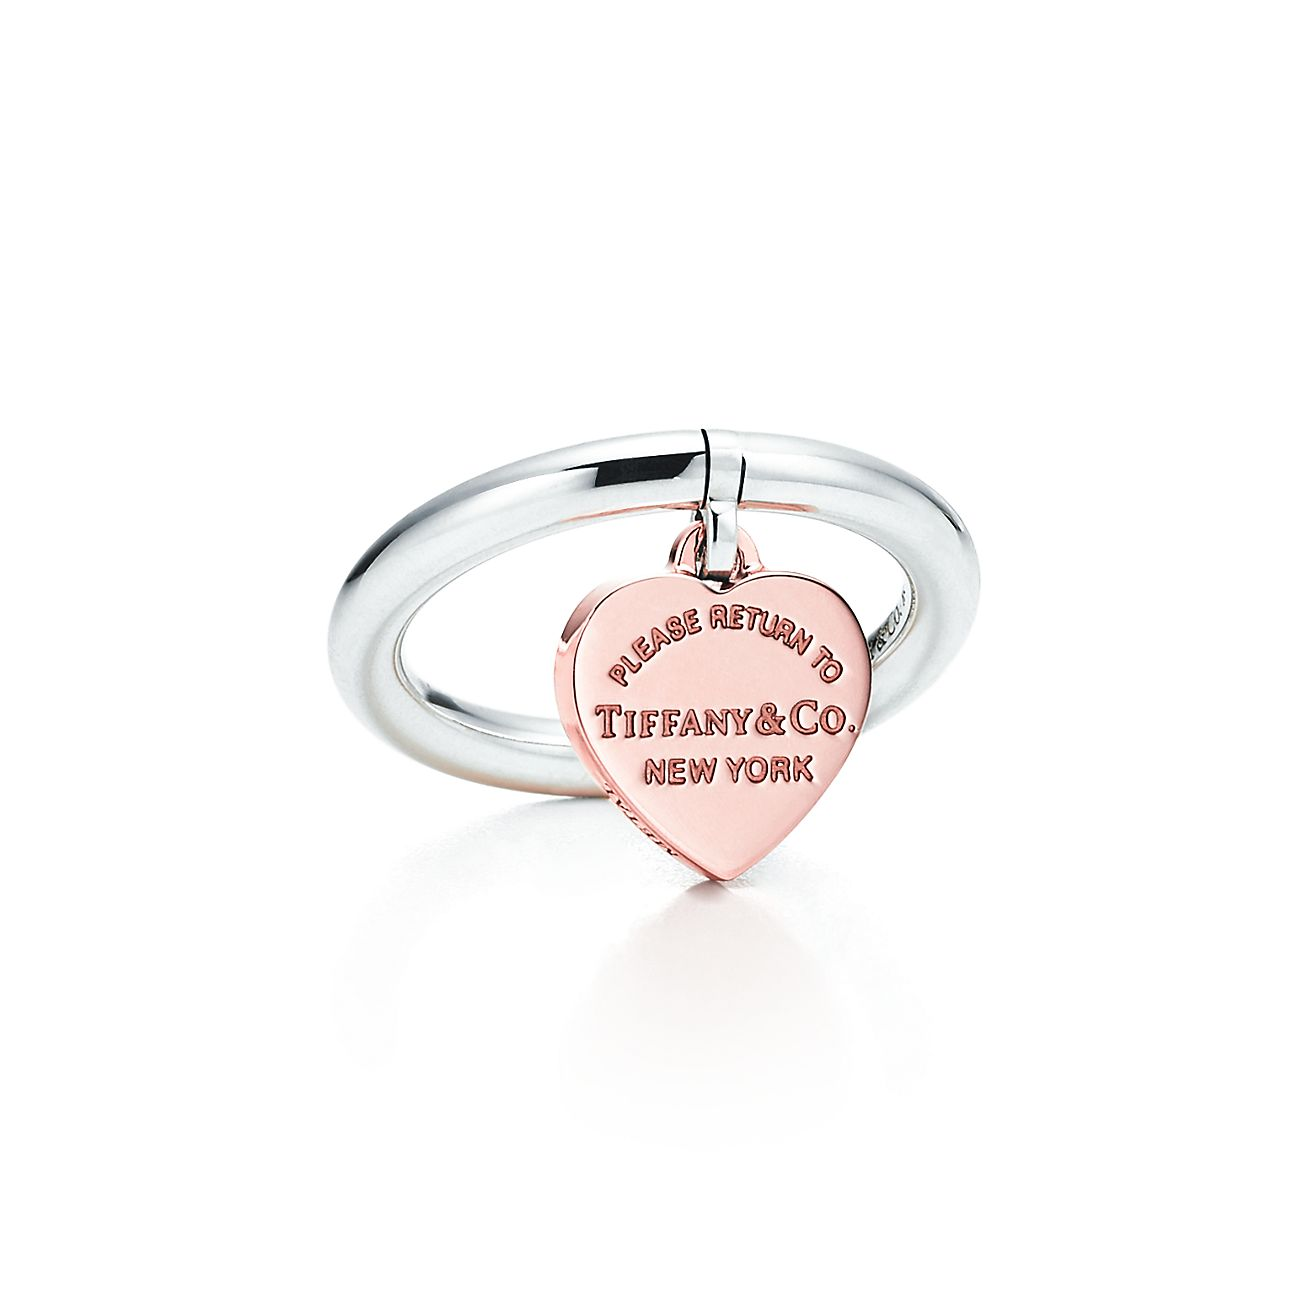 Return To Tiffany Heart Tag Ring In Sterling Silver And Rubedo